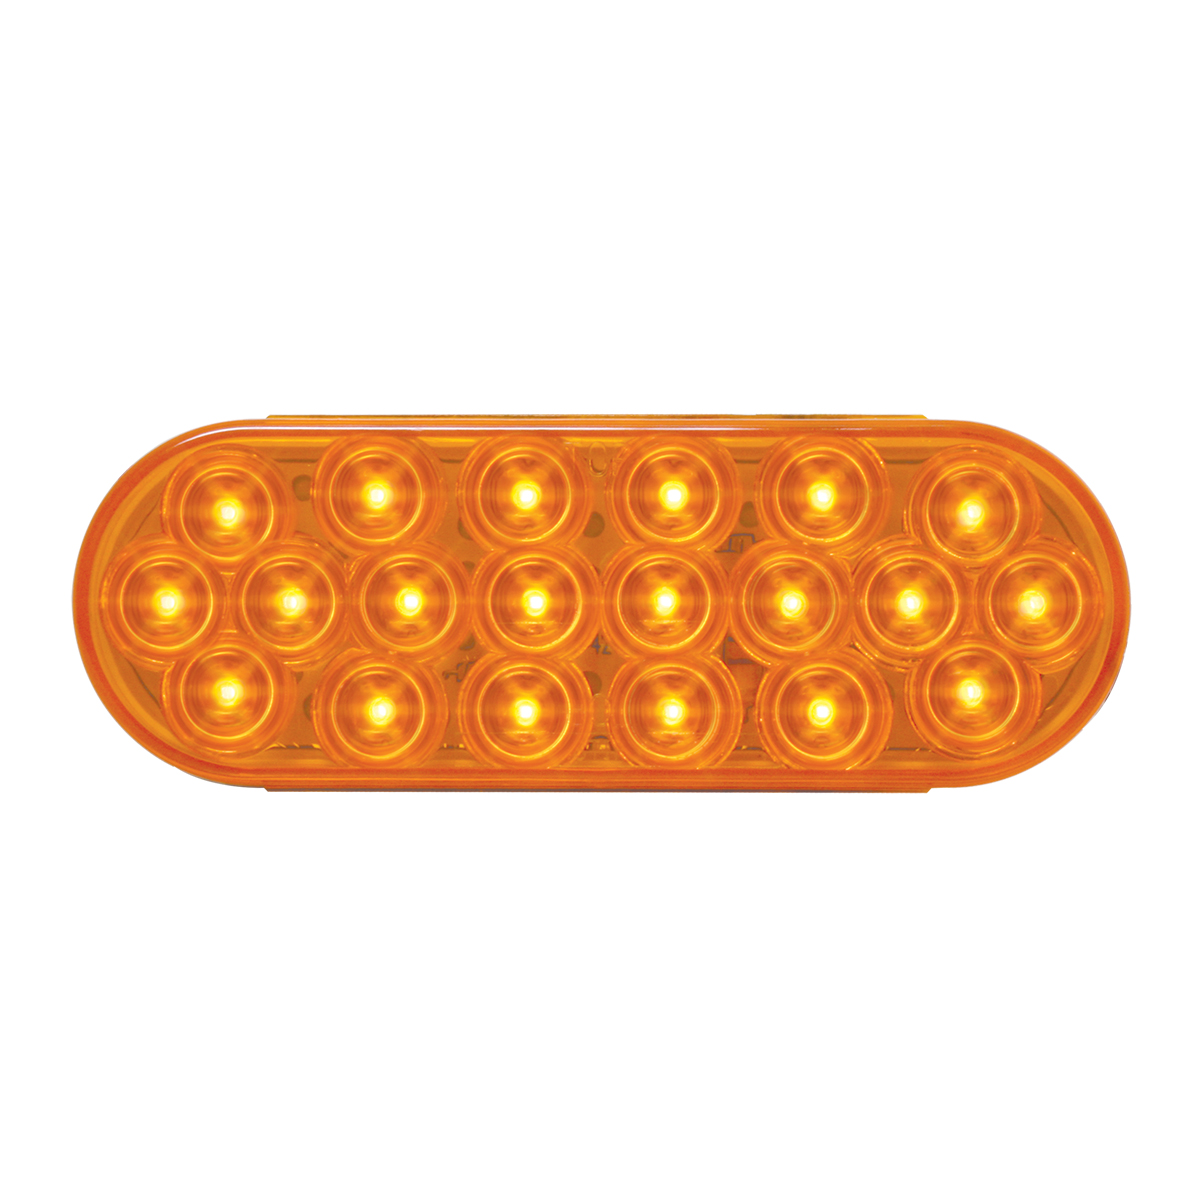 75080 24V Oval Fleet LED Light